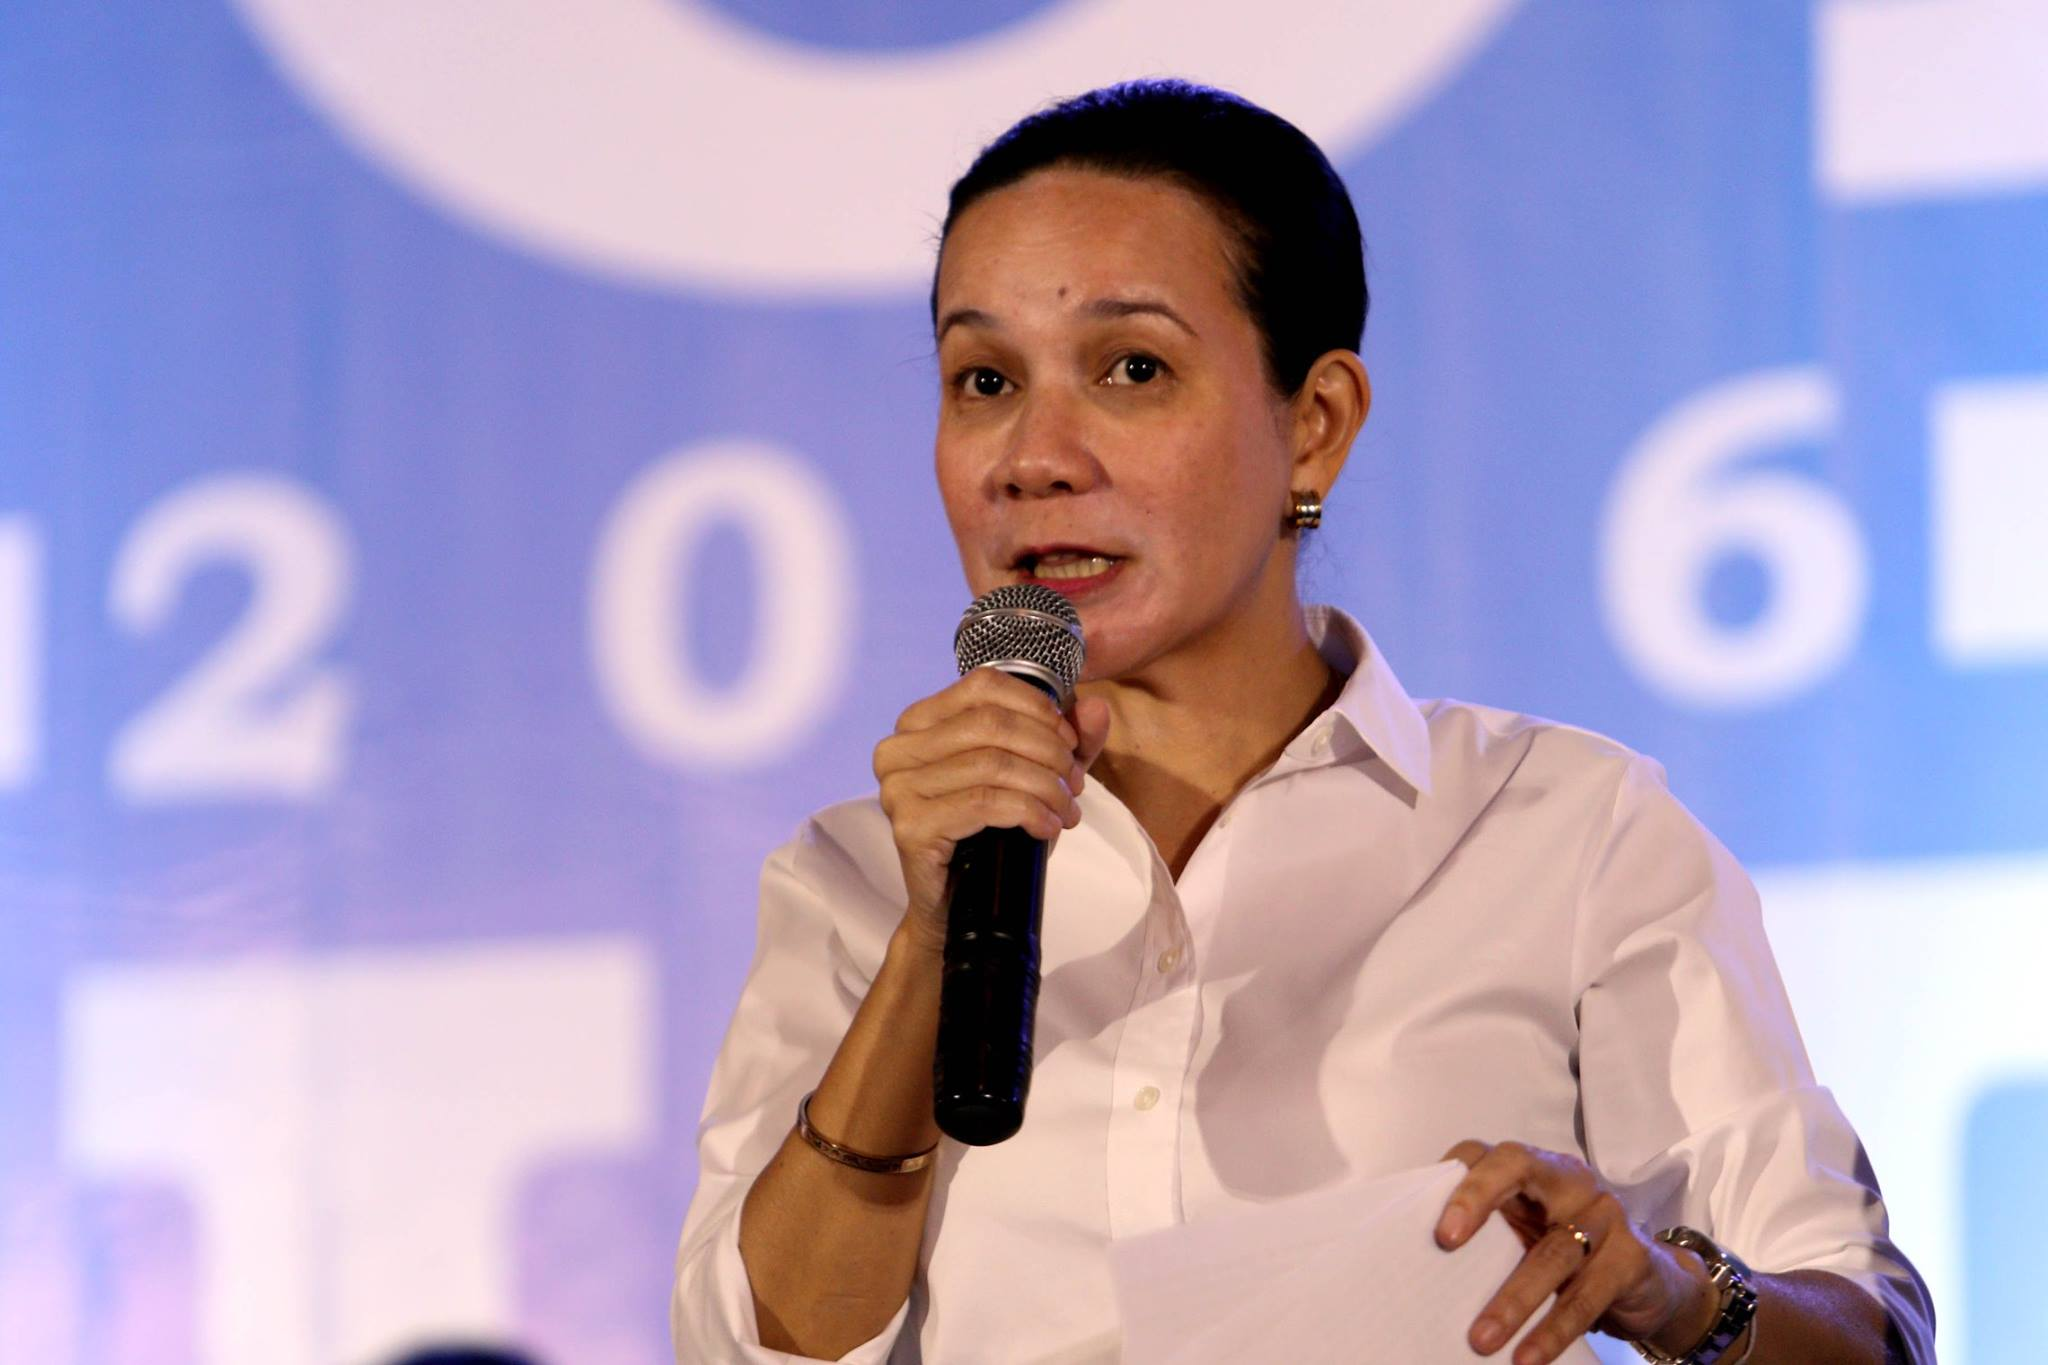 The entry of independent senator Grace Poe to the 2016 presidential election has upended an already unpredictable campaign. (Facebook)